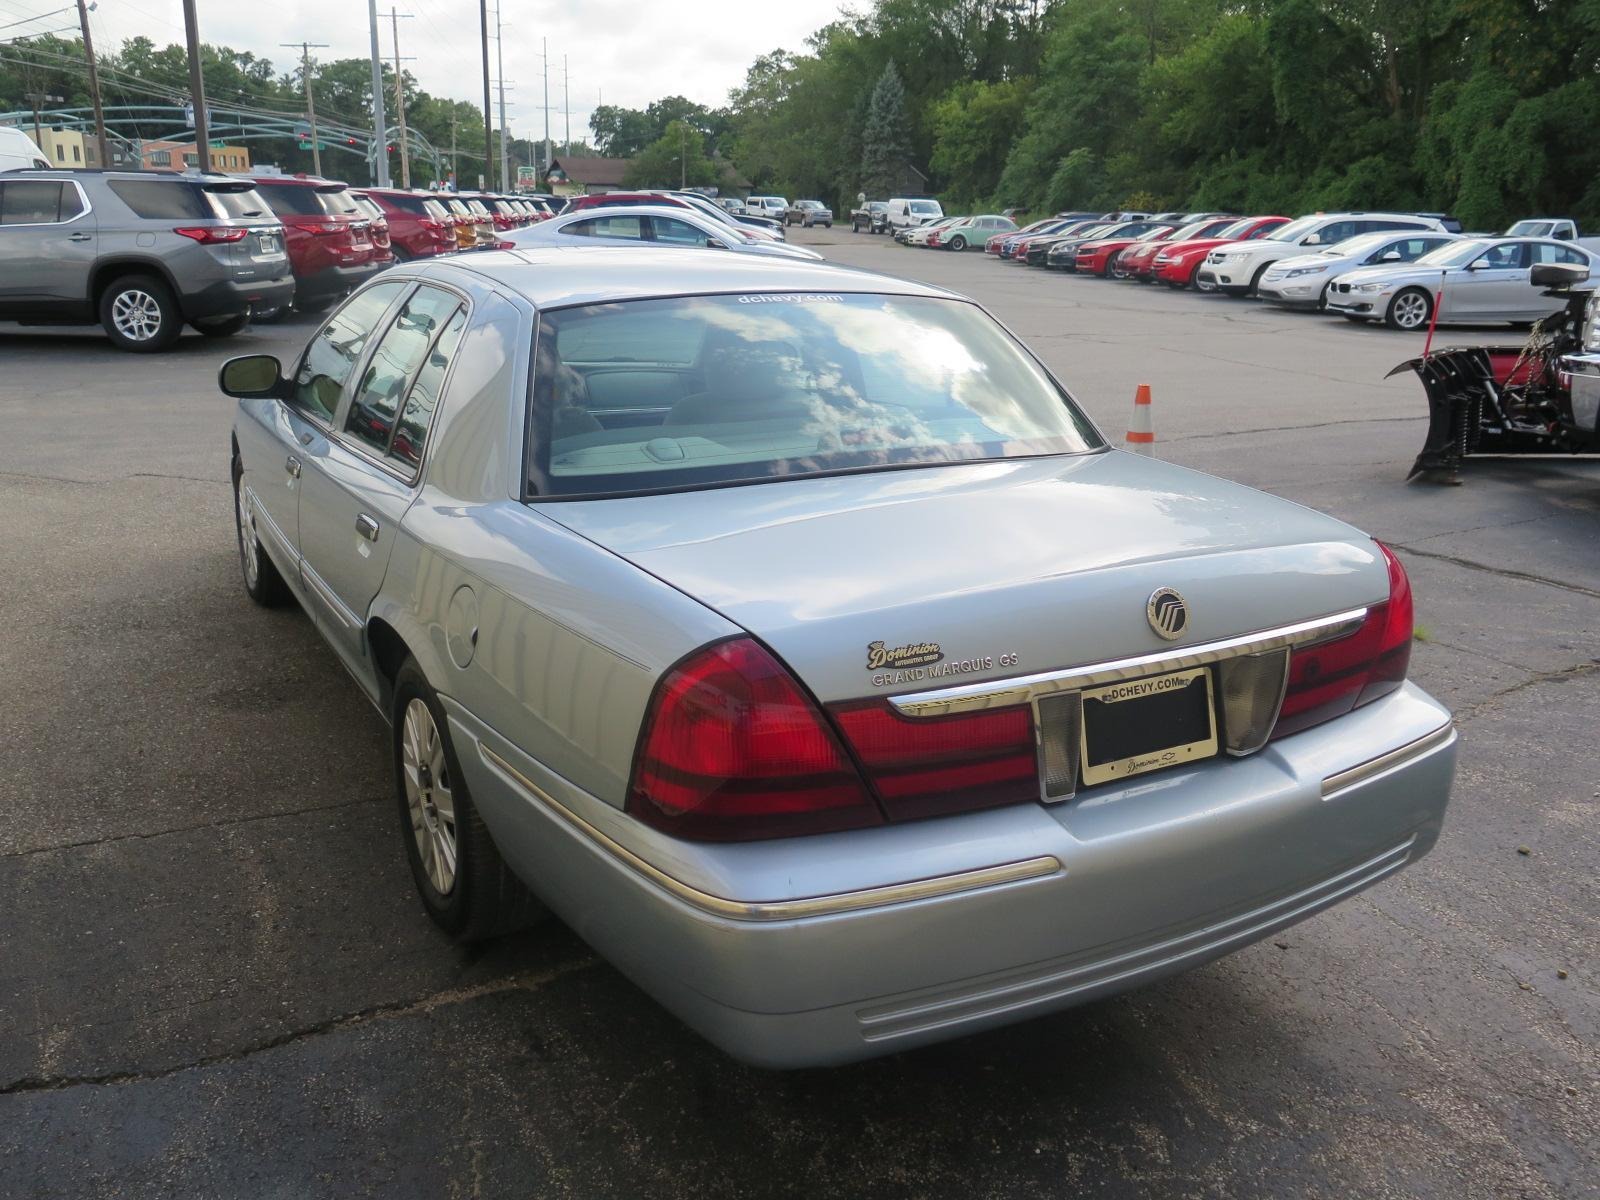 Pre-Owned 2004 Mercury Grand Marquis 4DR SDN GS